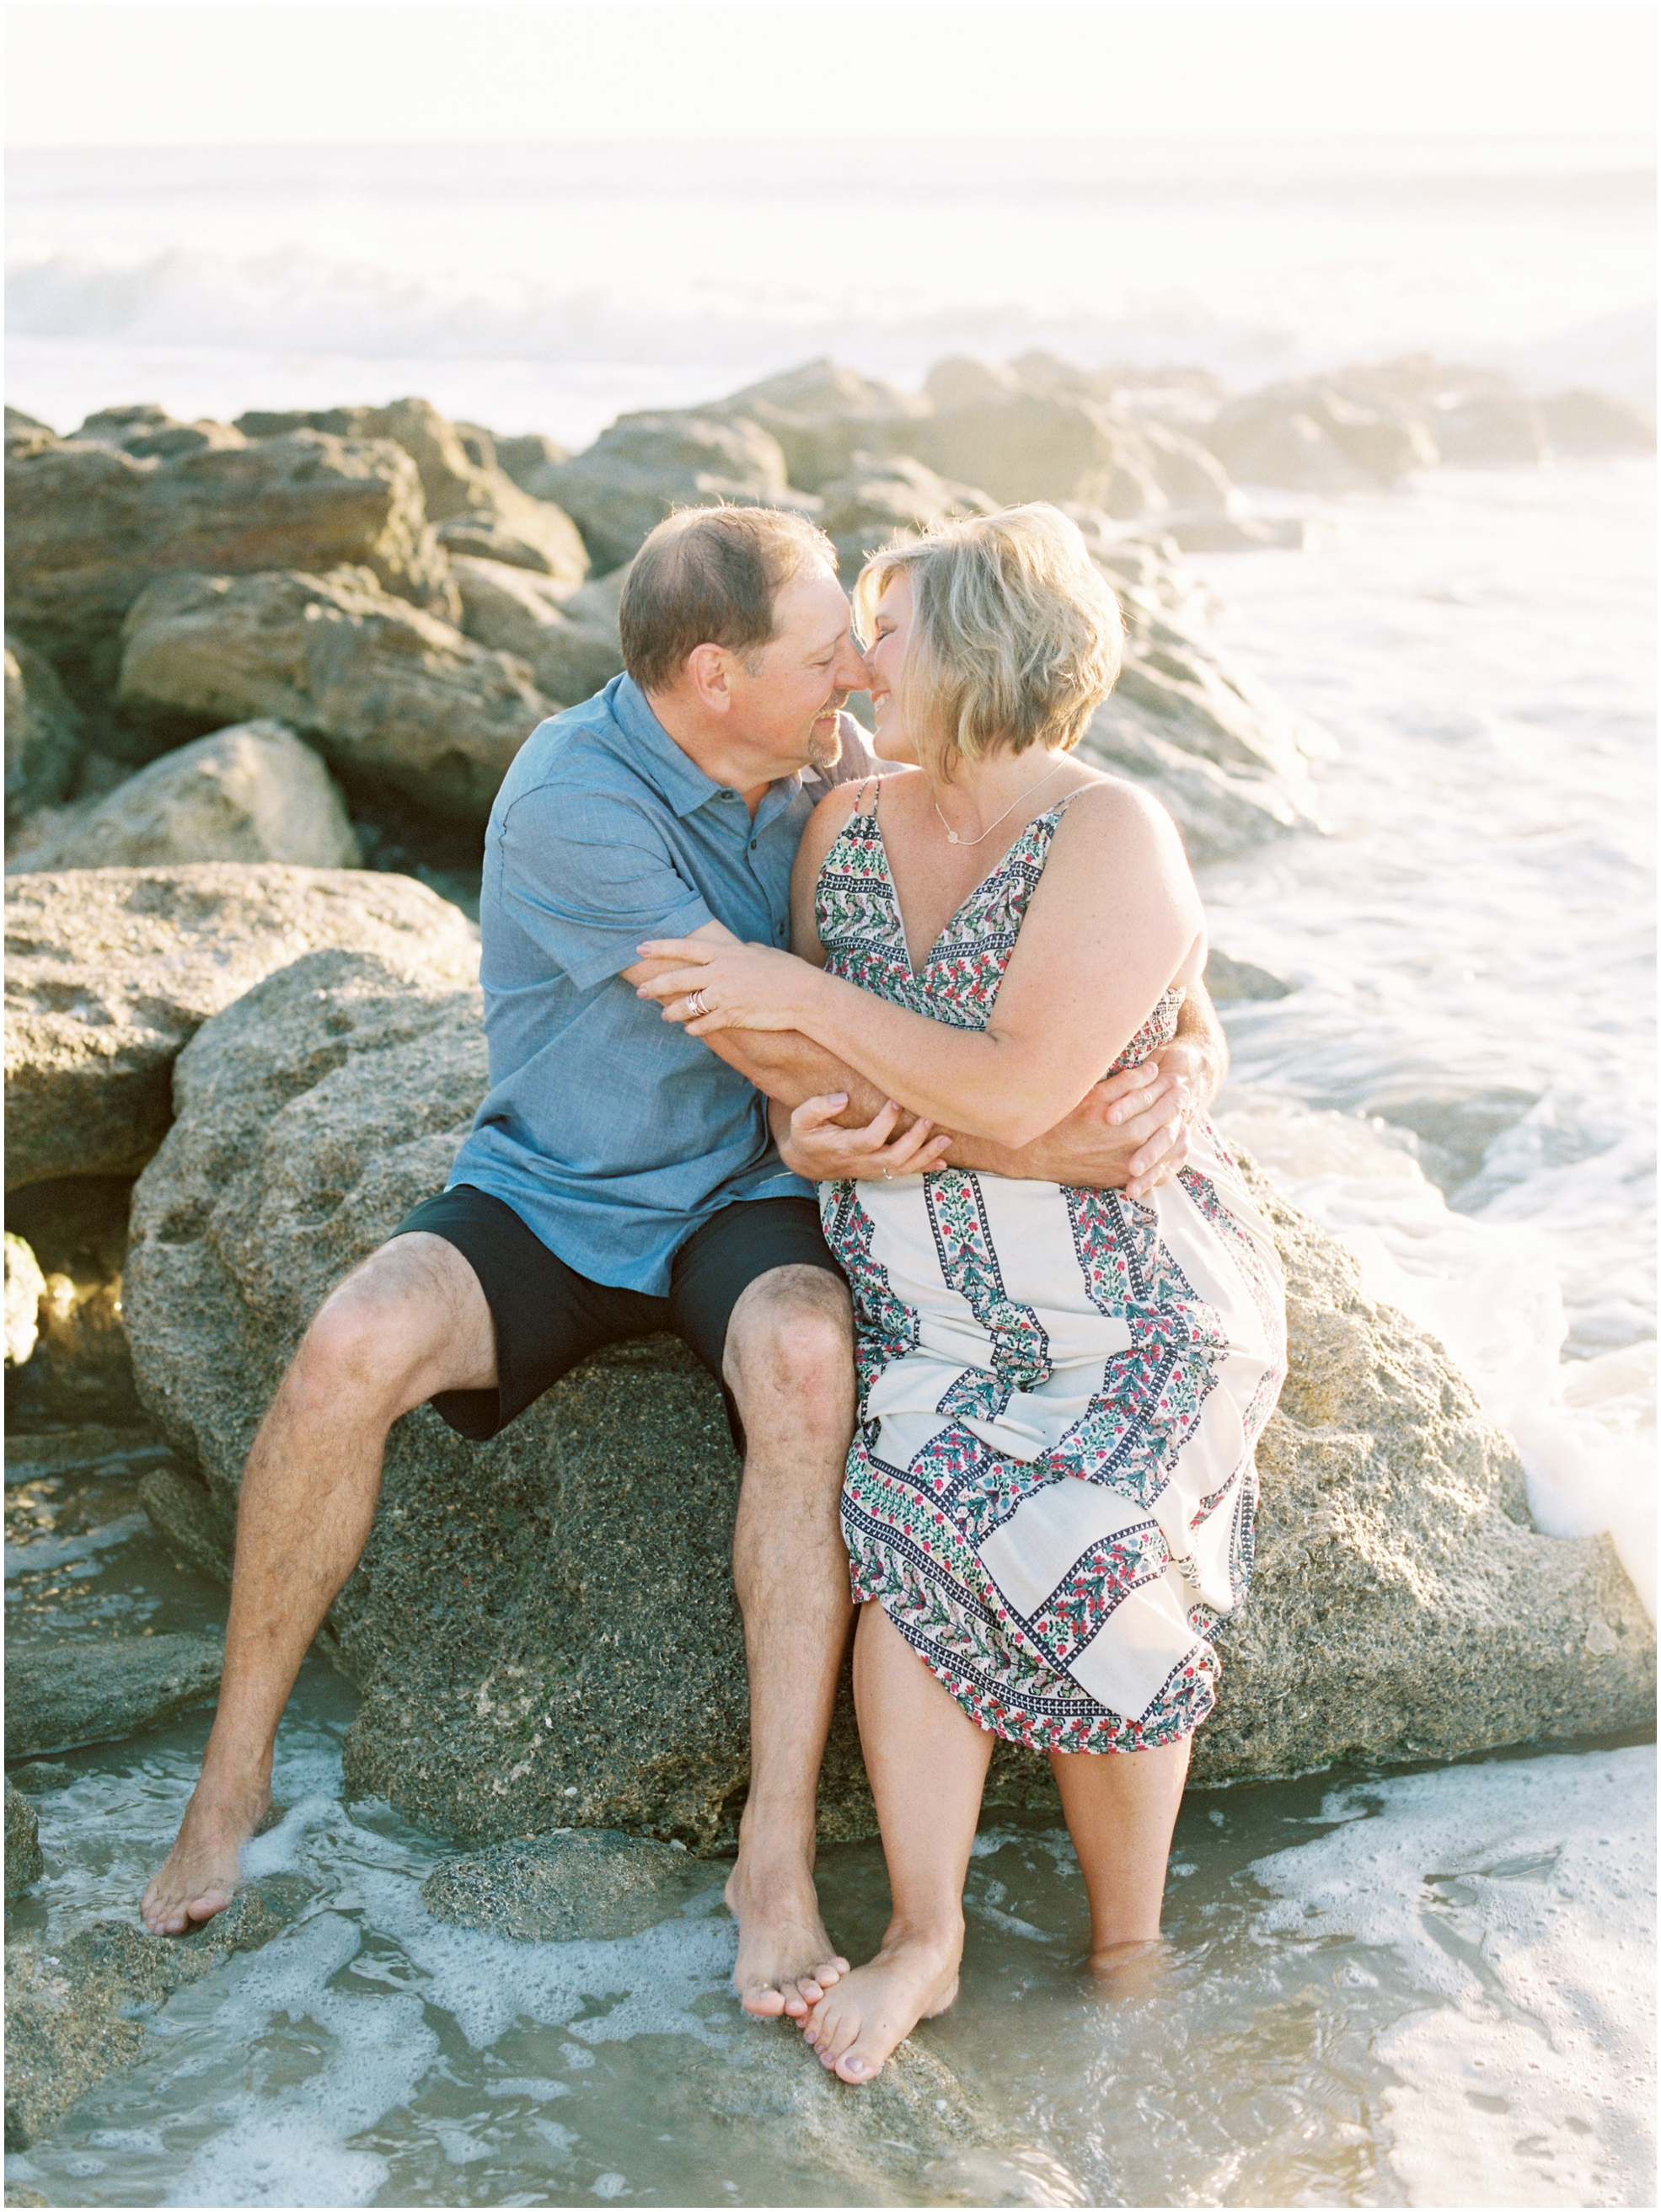 Lisa Silva Photography- Jacksonville, St. Augustine, Amelia Island, Ponte Vedra Beach, North East Florida Fine Art Film Photographer- Anniversary Session at Washington Oaks in Palm Coast, Florida_0012.jpg